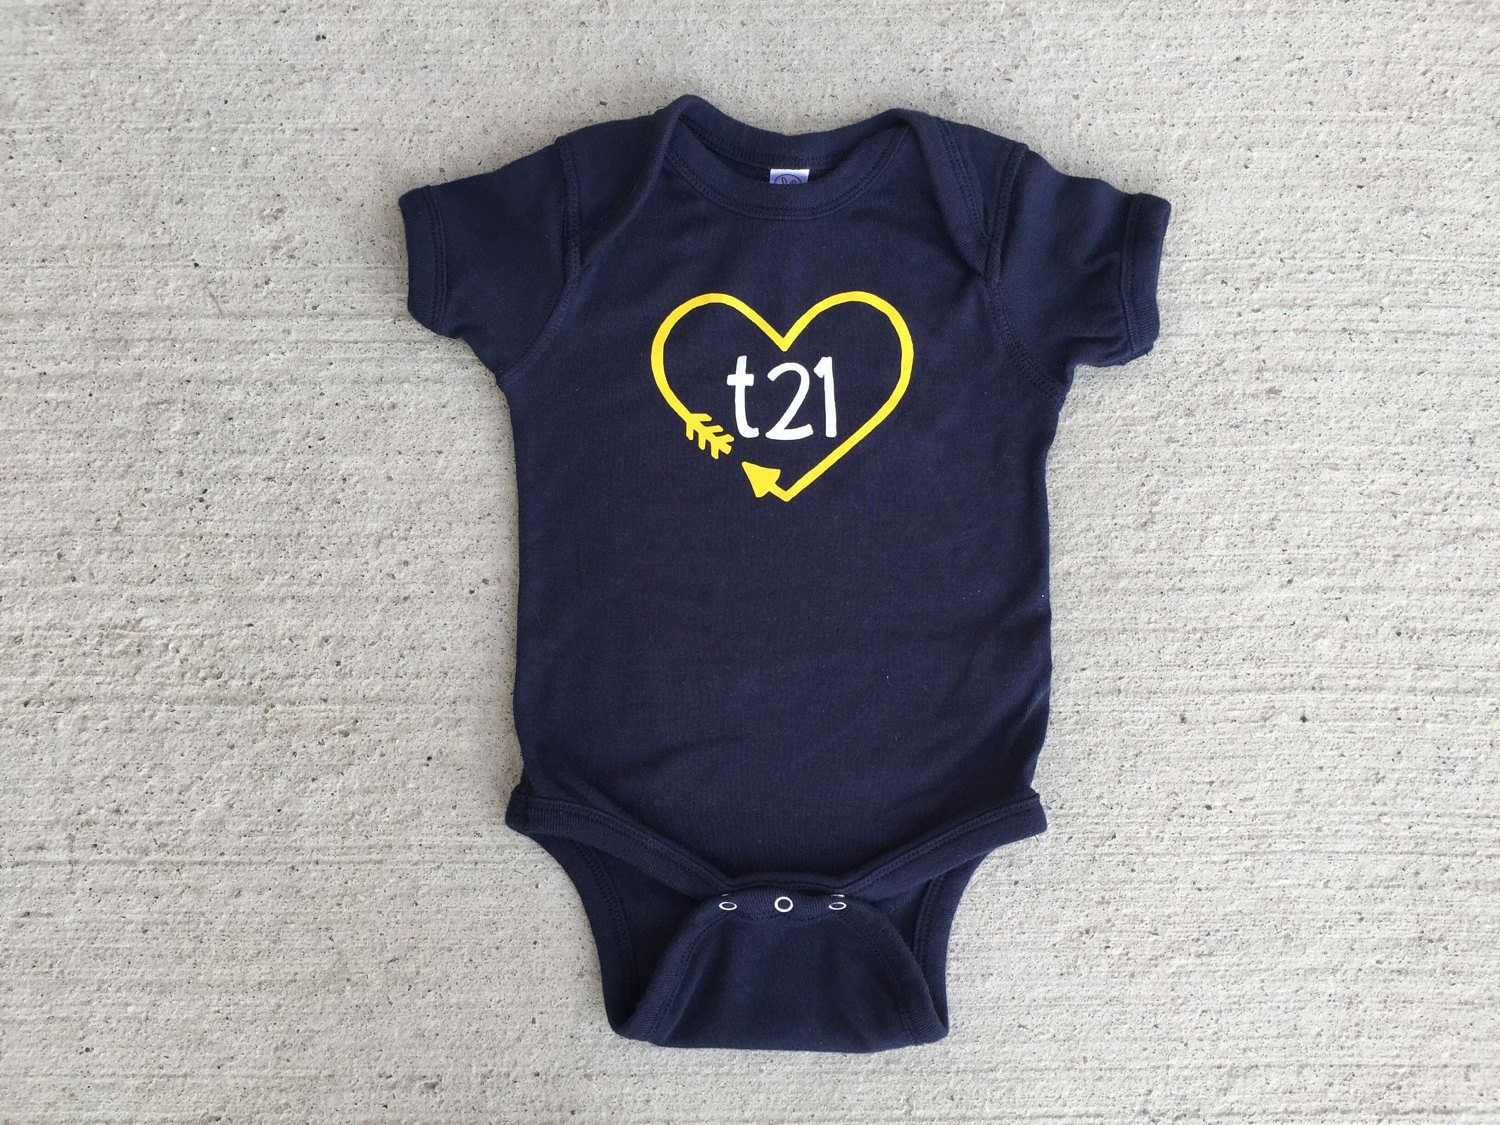 d361889b0 Down Syndrome Awareness Onesies ~ Baby Girls or Baby Boys, Navy Short-Sleeved  Onesie with Yellow and White